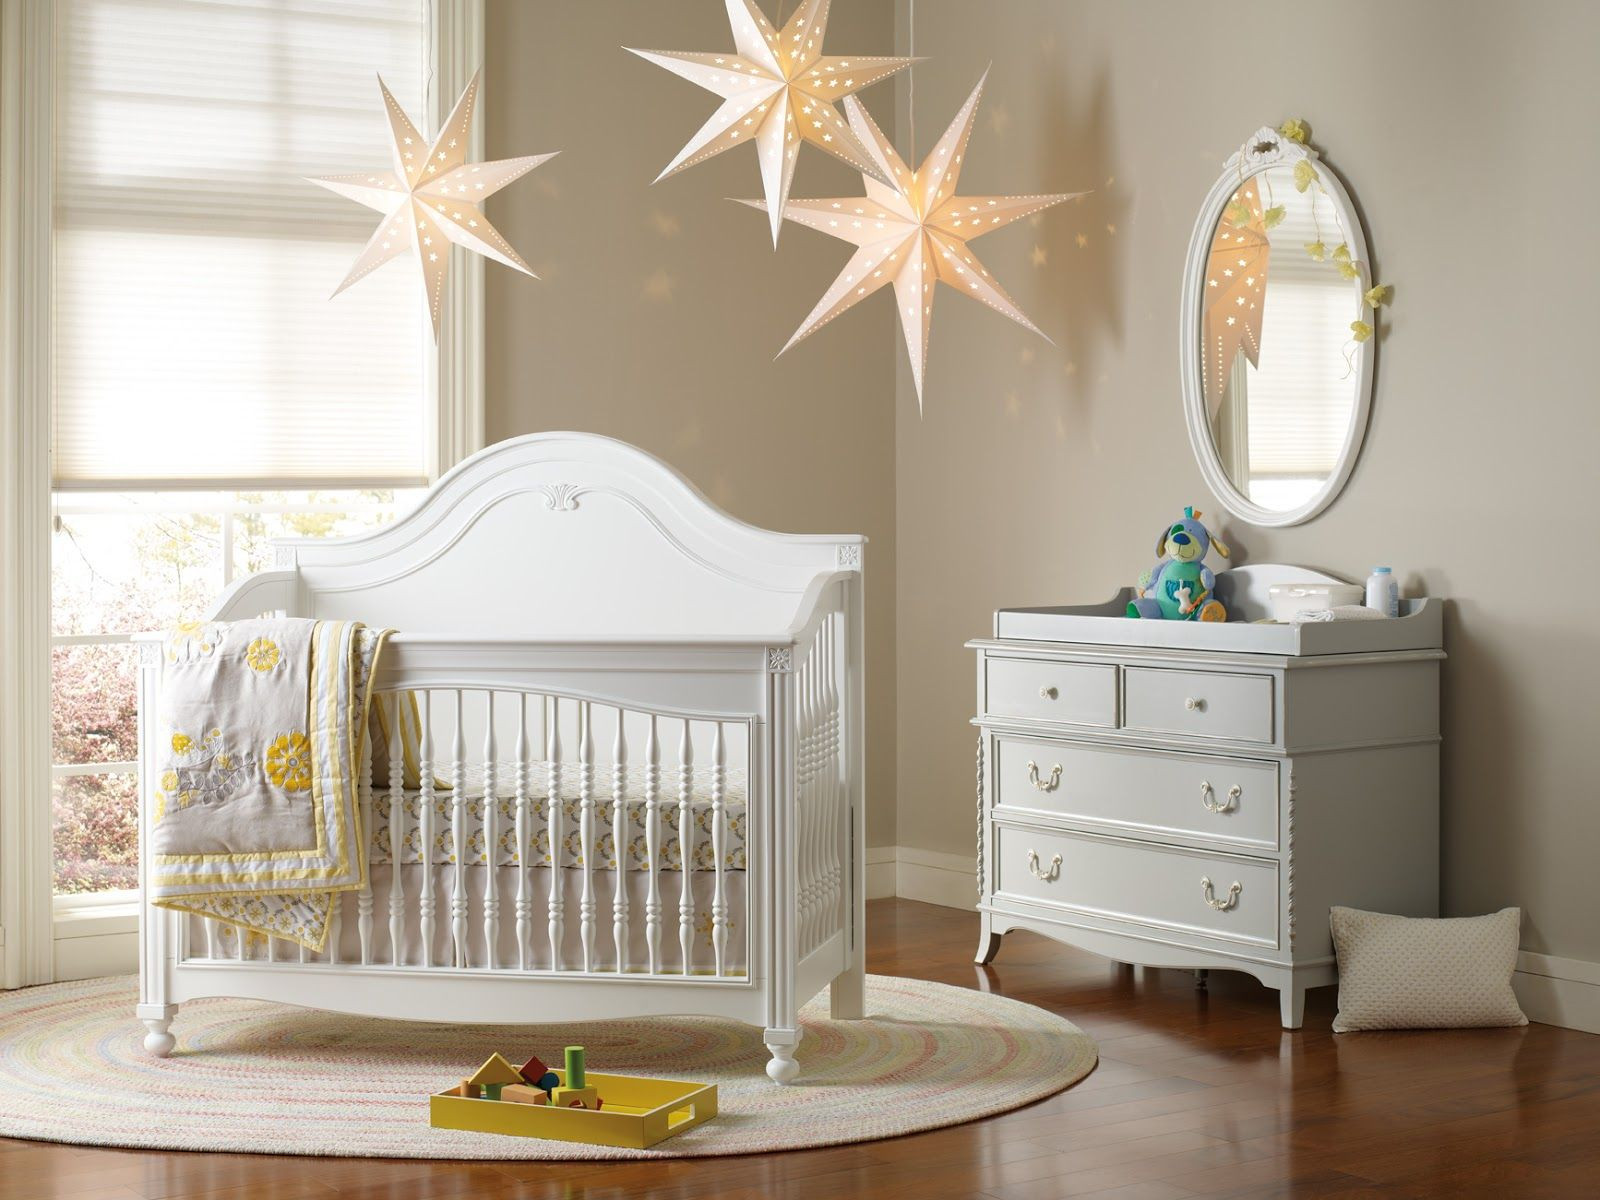 hanging decorative stars cheap ideas for baby room